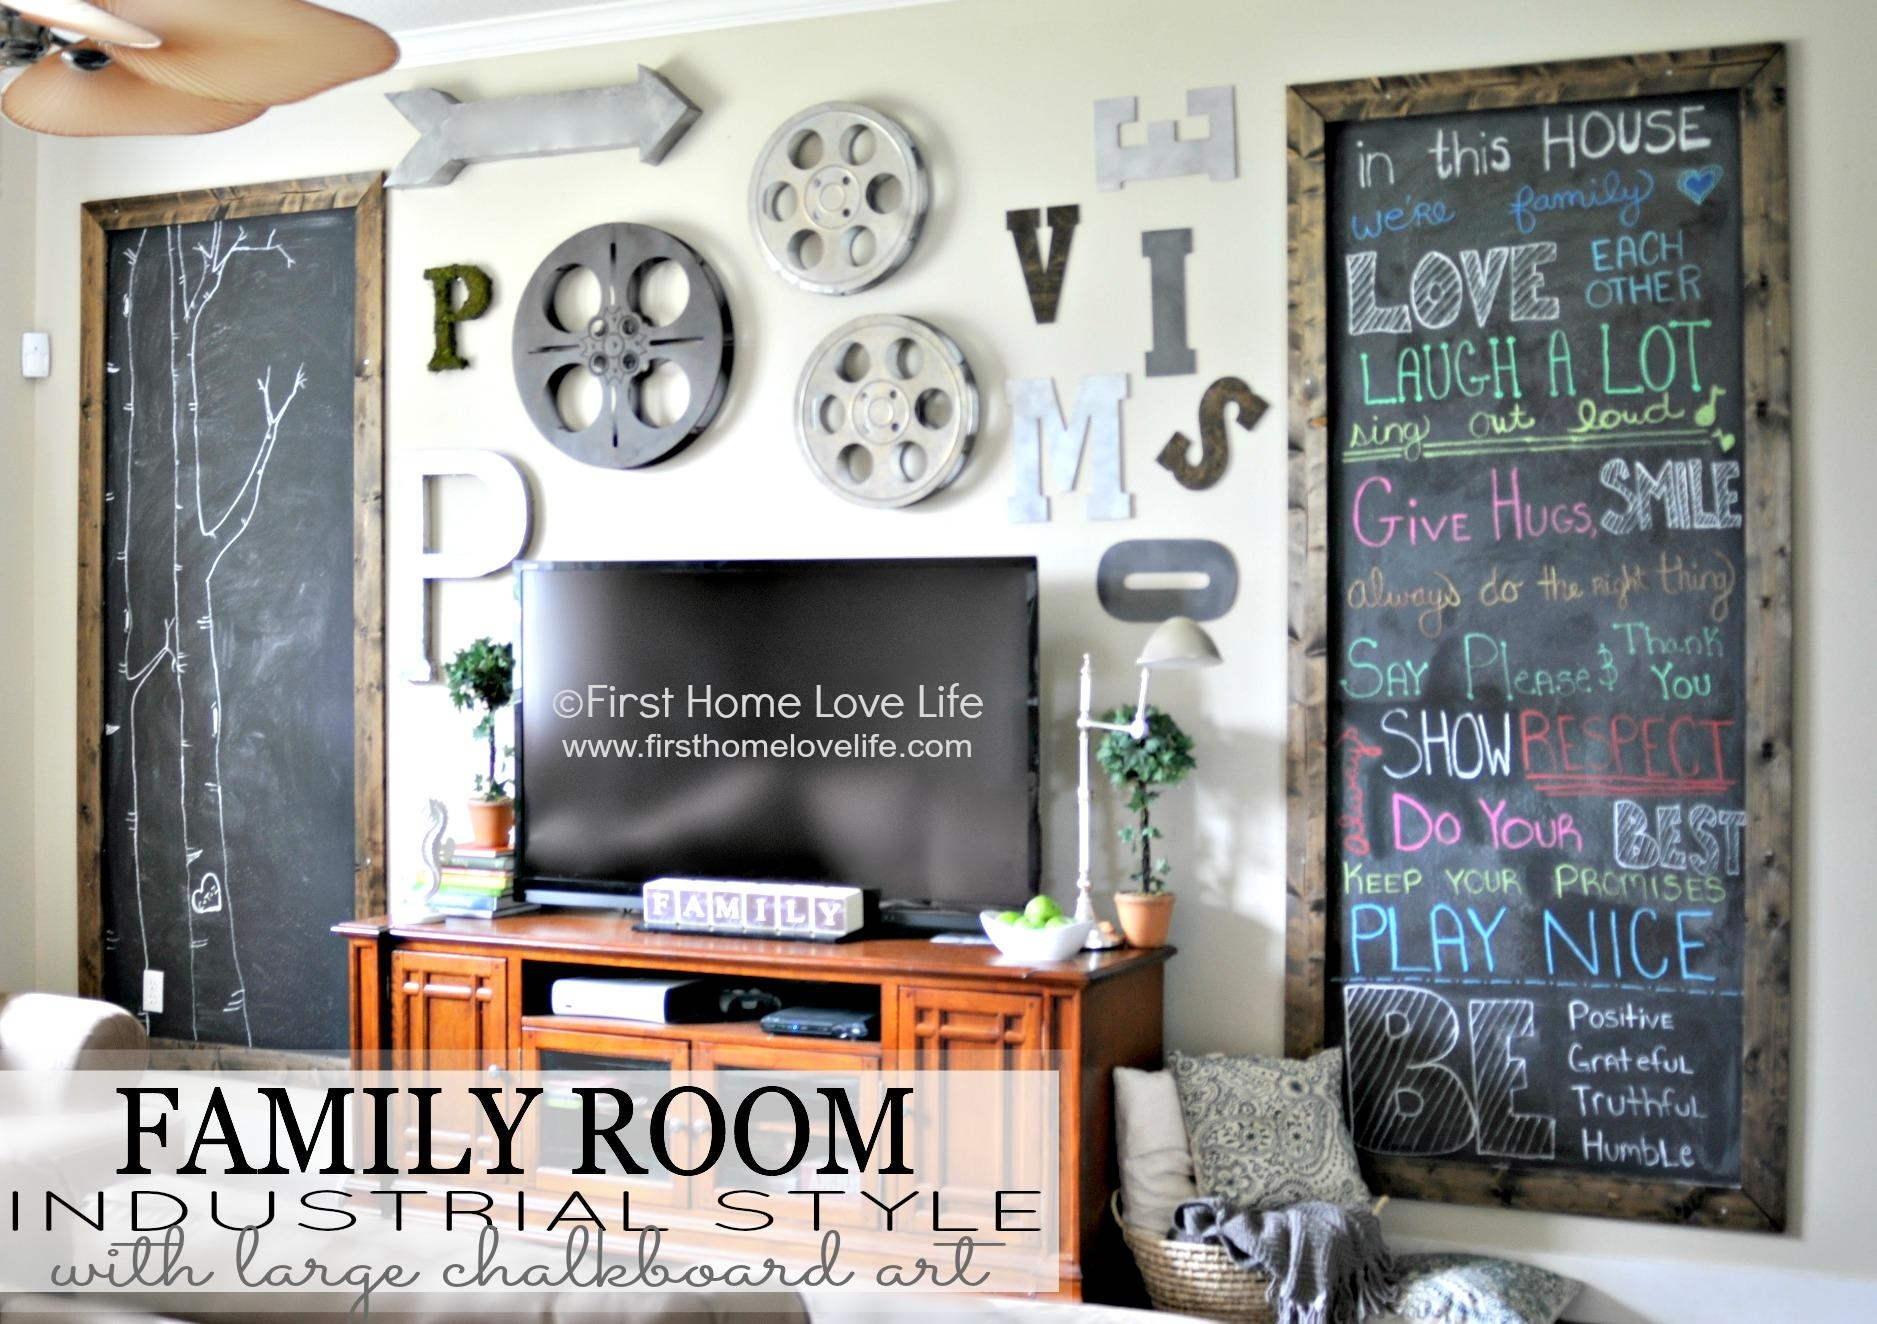 Industrial Style Family Room Gallery Wall With Chalkboard Art with Vintage Industrial Wall Art